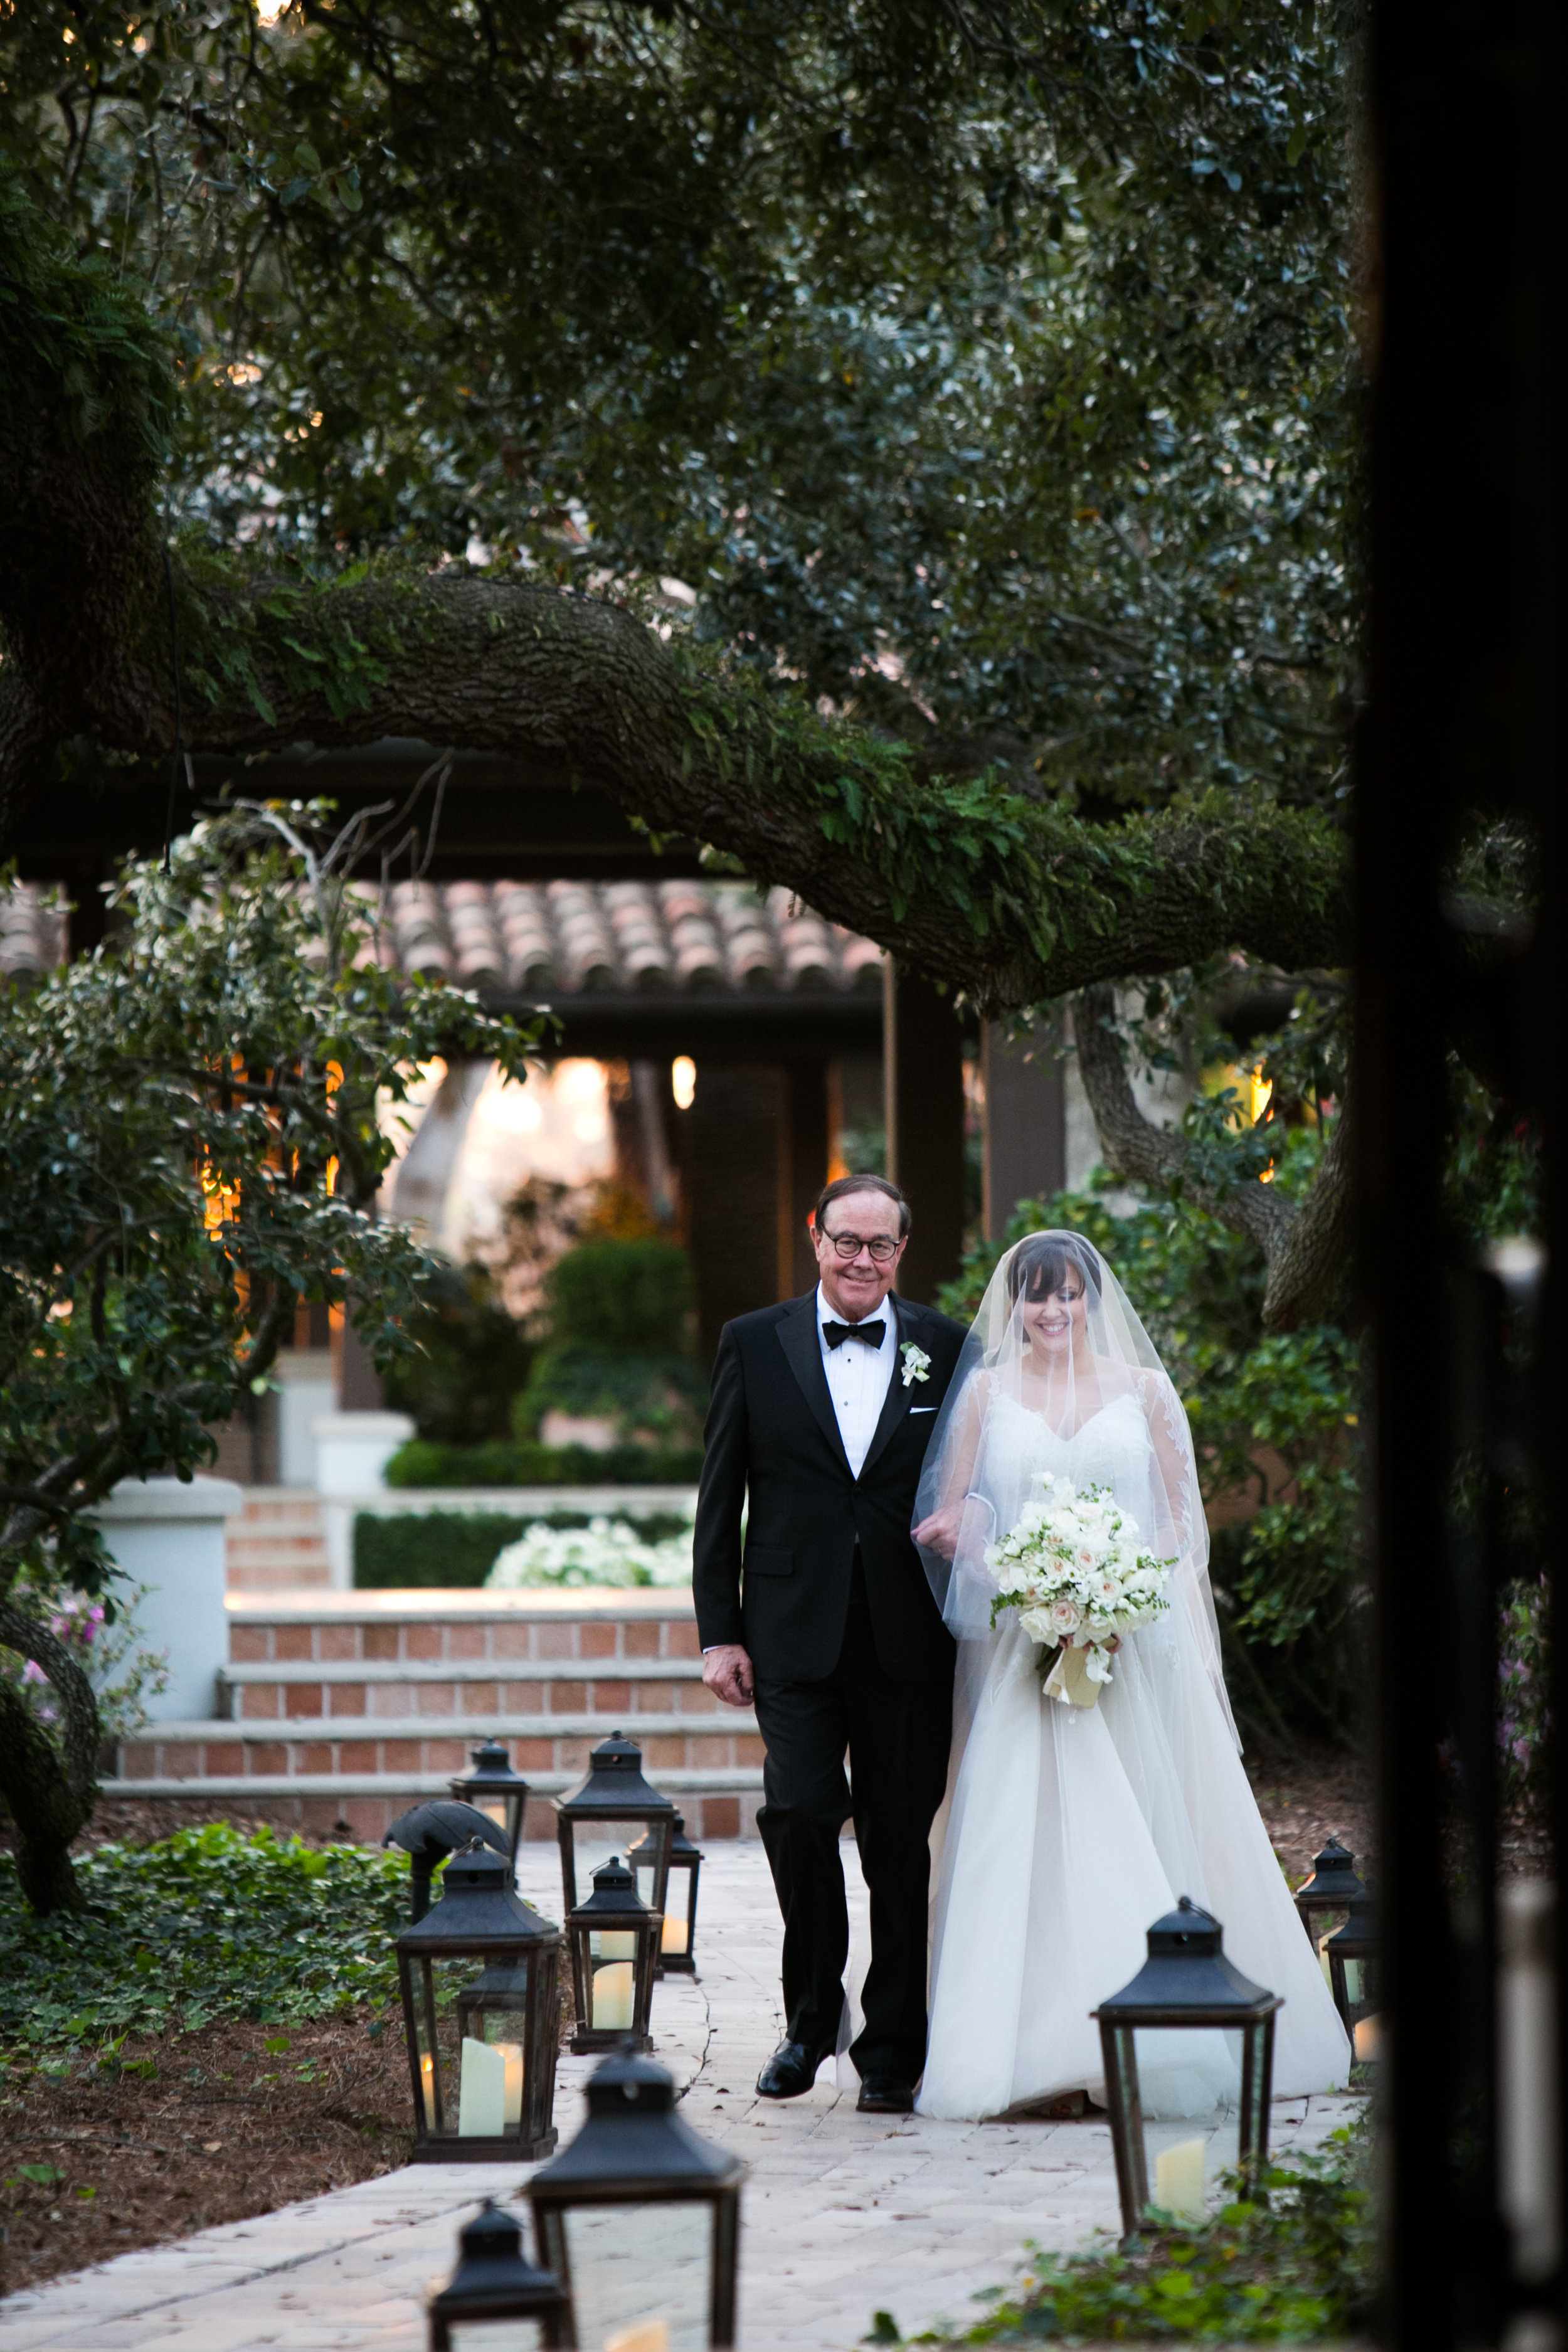 Sea Island wedding at The Cloister Chapel by The Decisive Moment